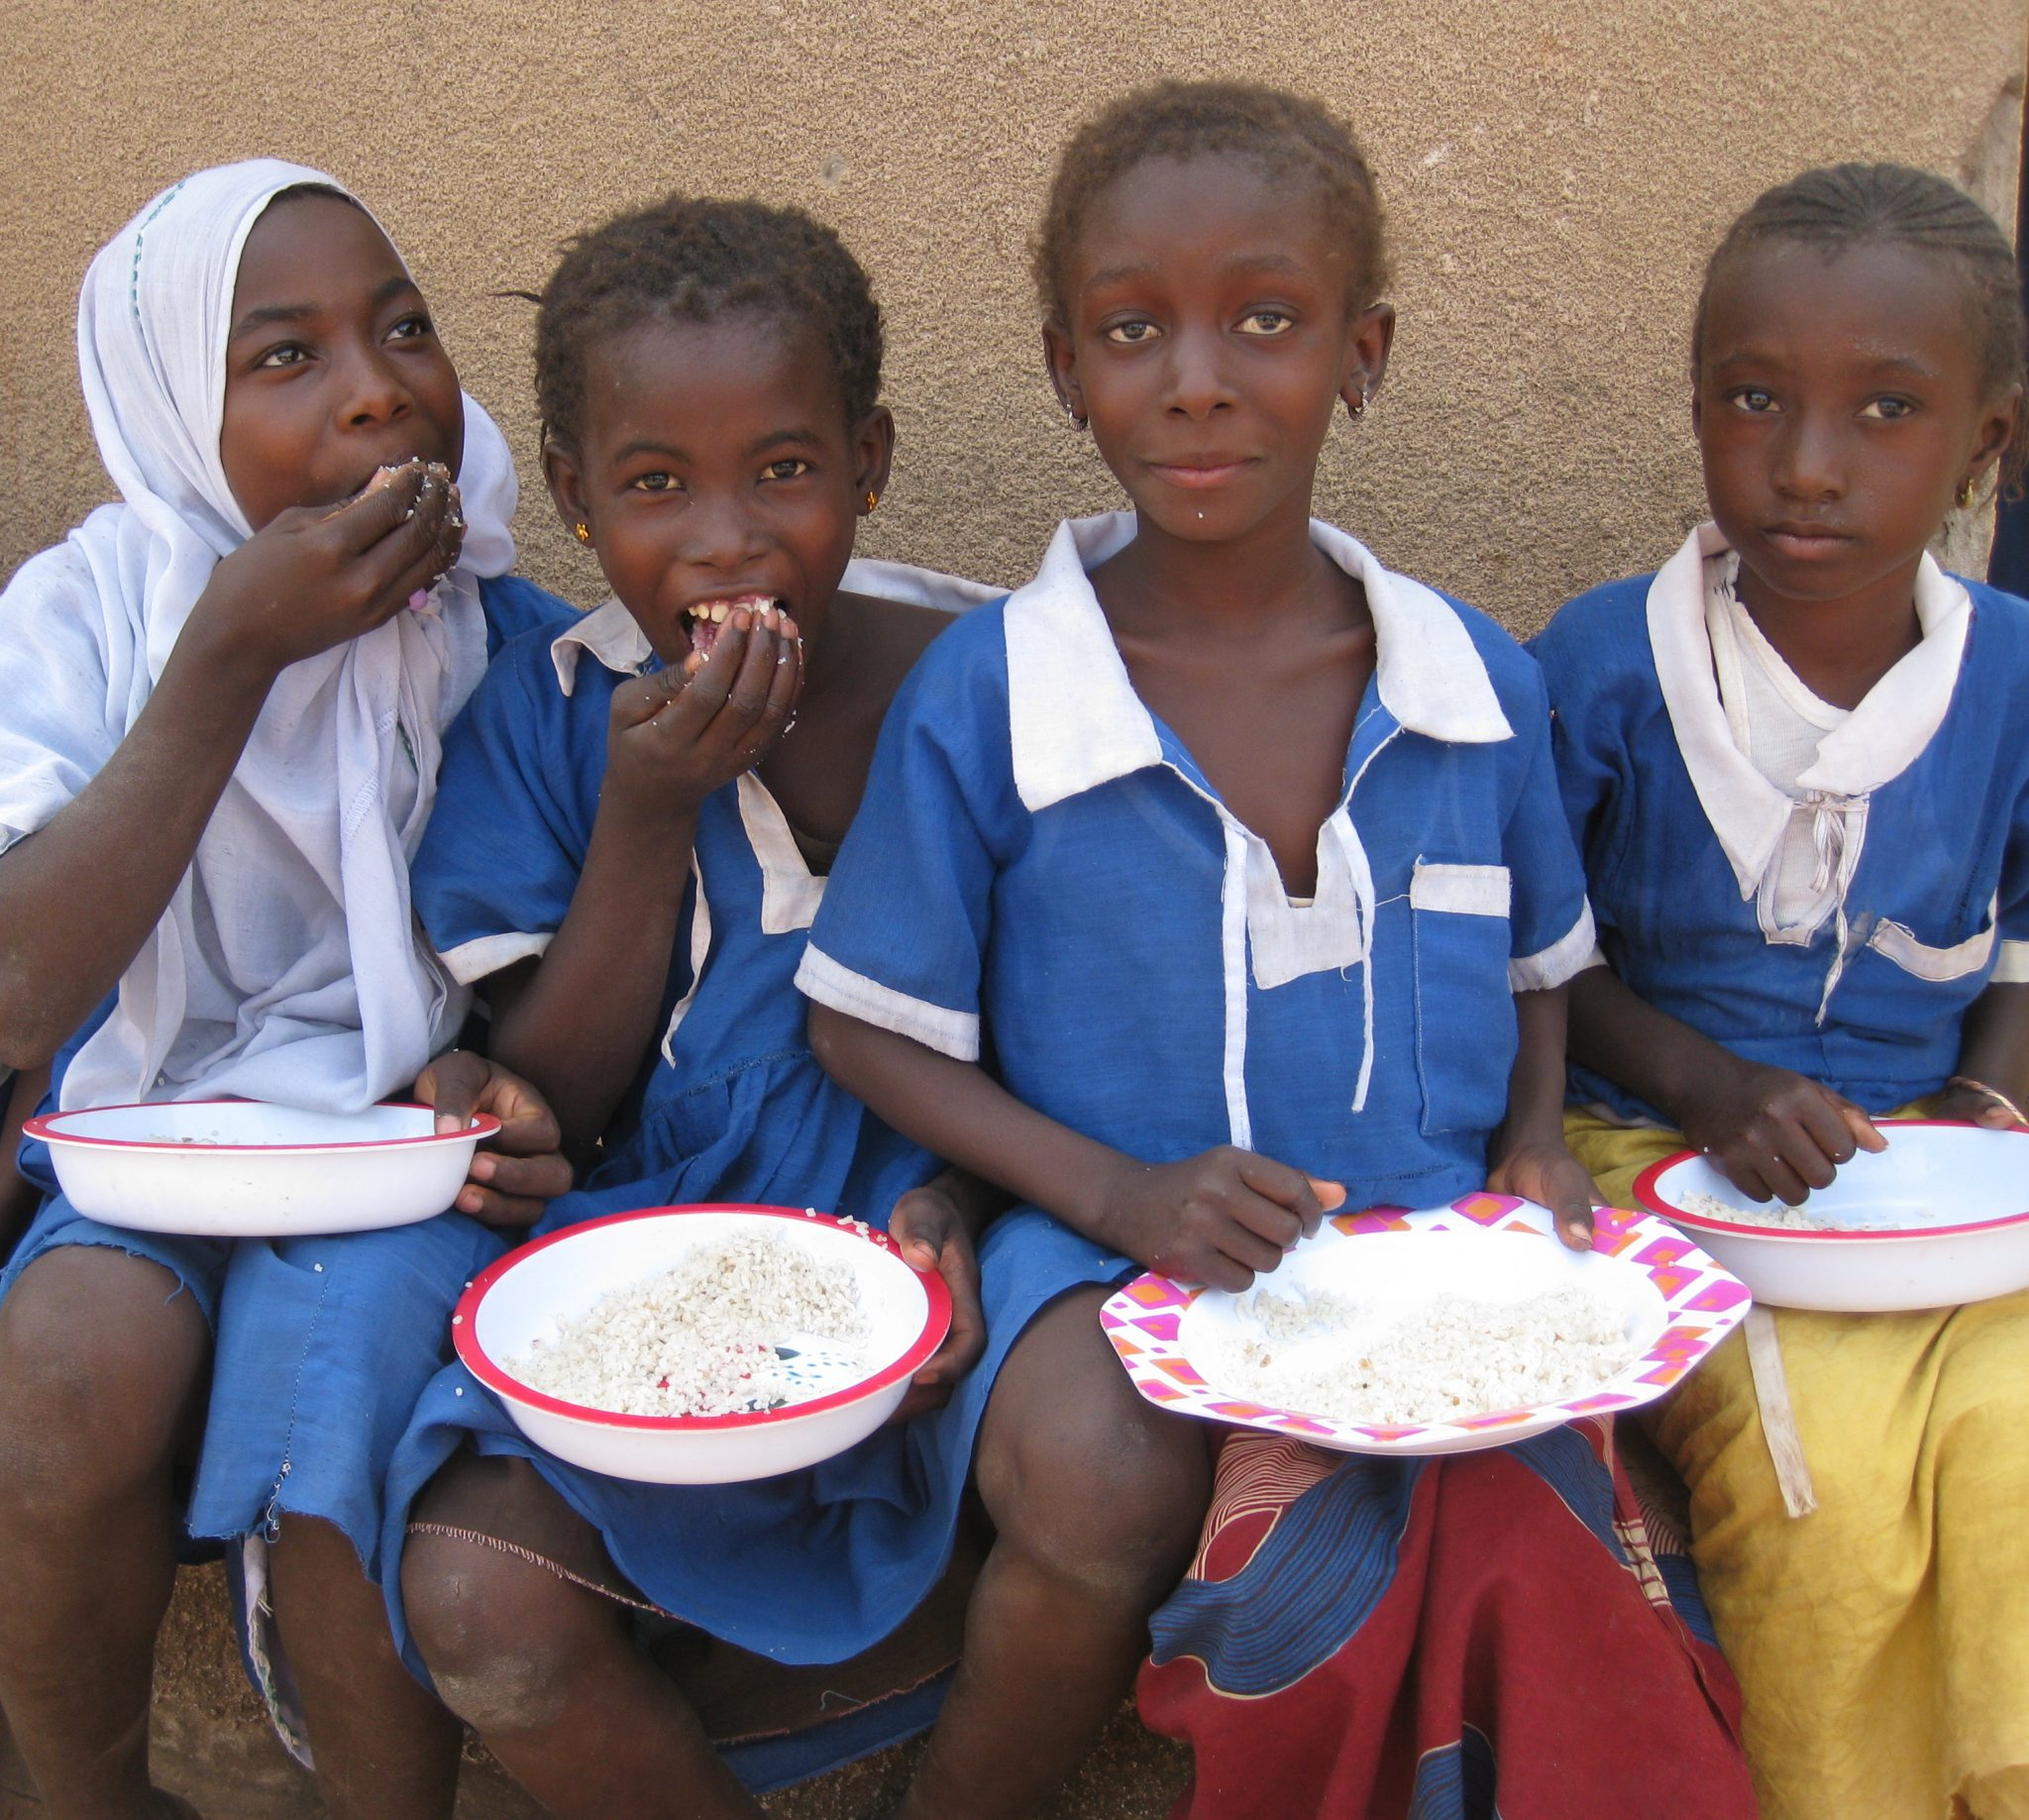 Four children eating a school meal